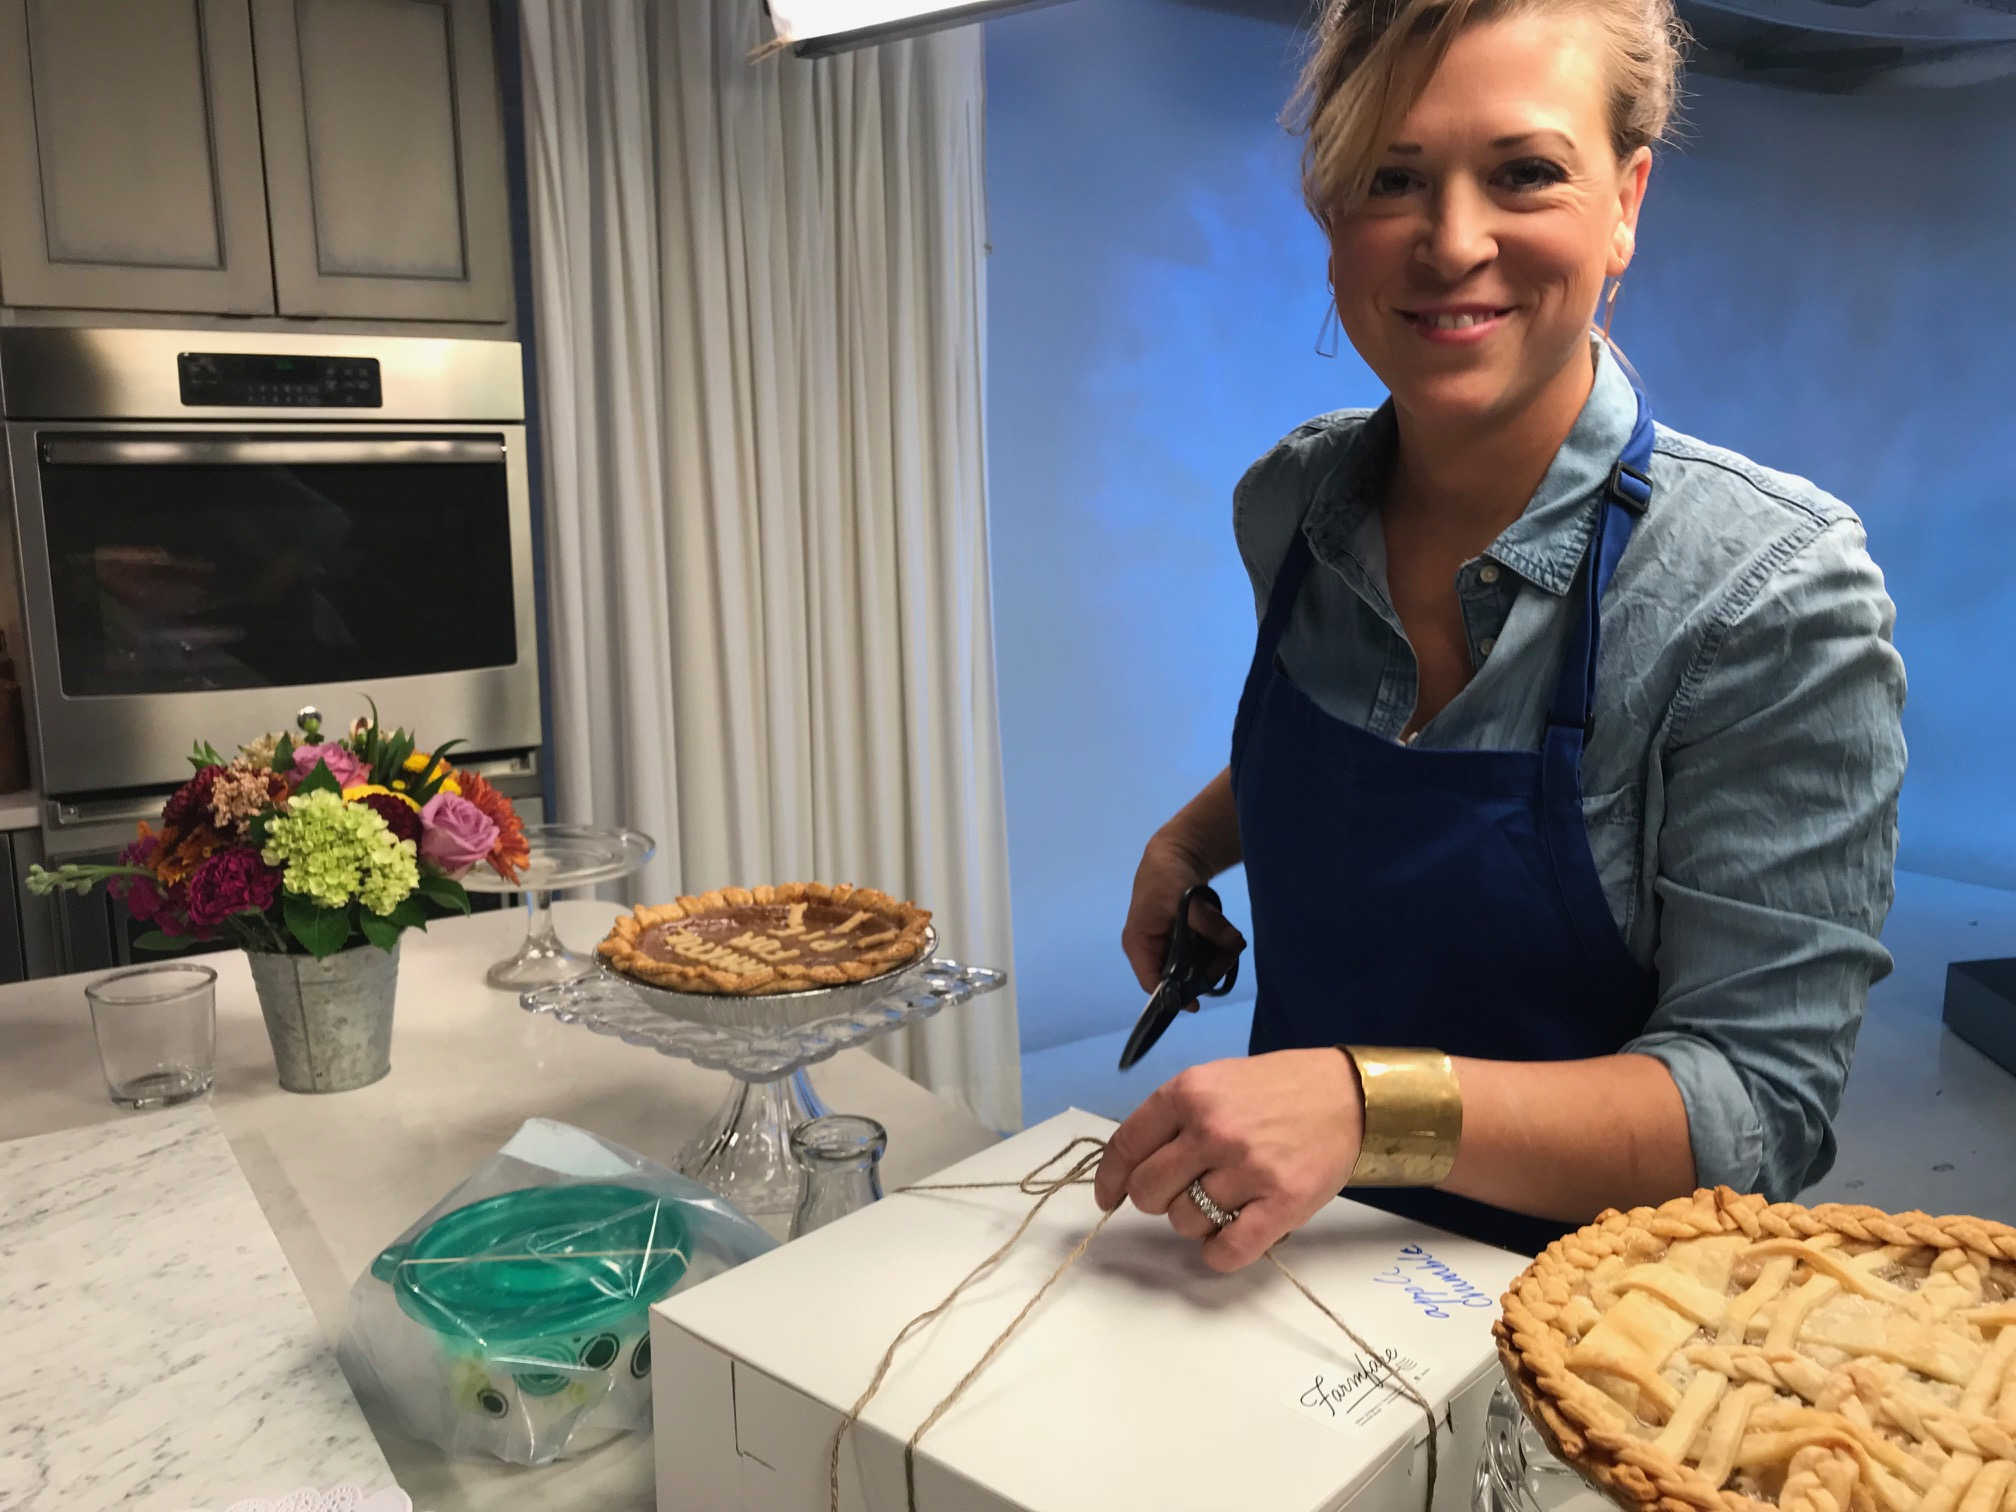 Katie is a frequent guest chef on Kansas City news and entertainment broadcast stations. This Thanksgiving pie segment was a viewer favorite.